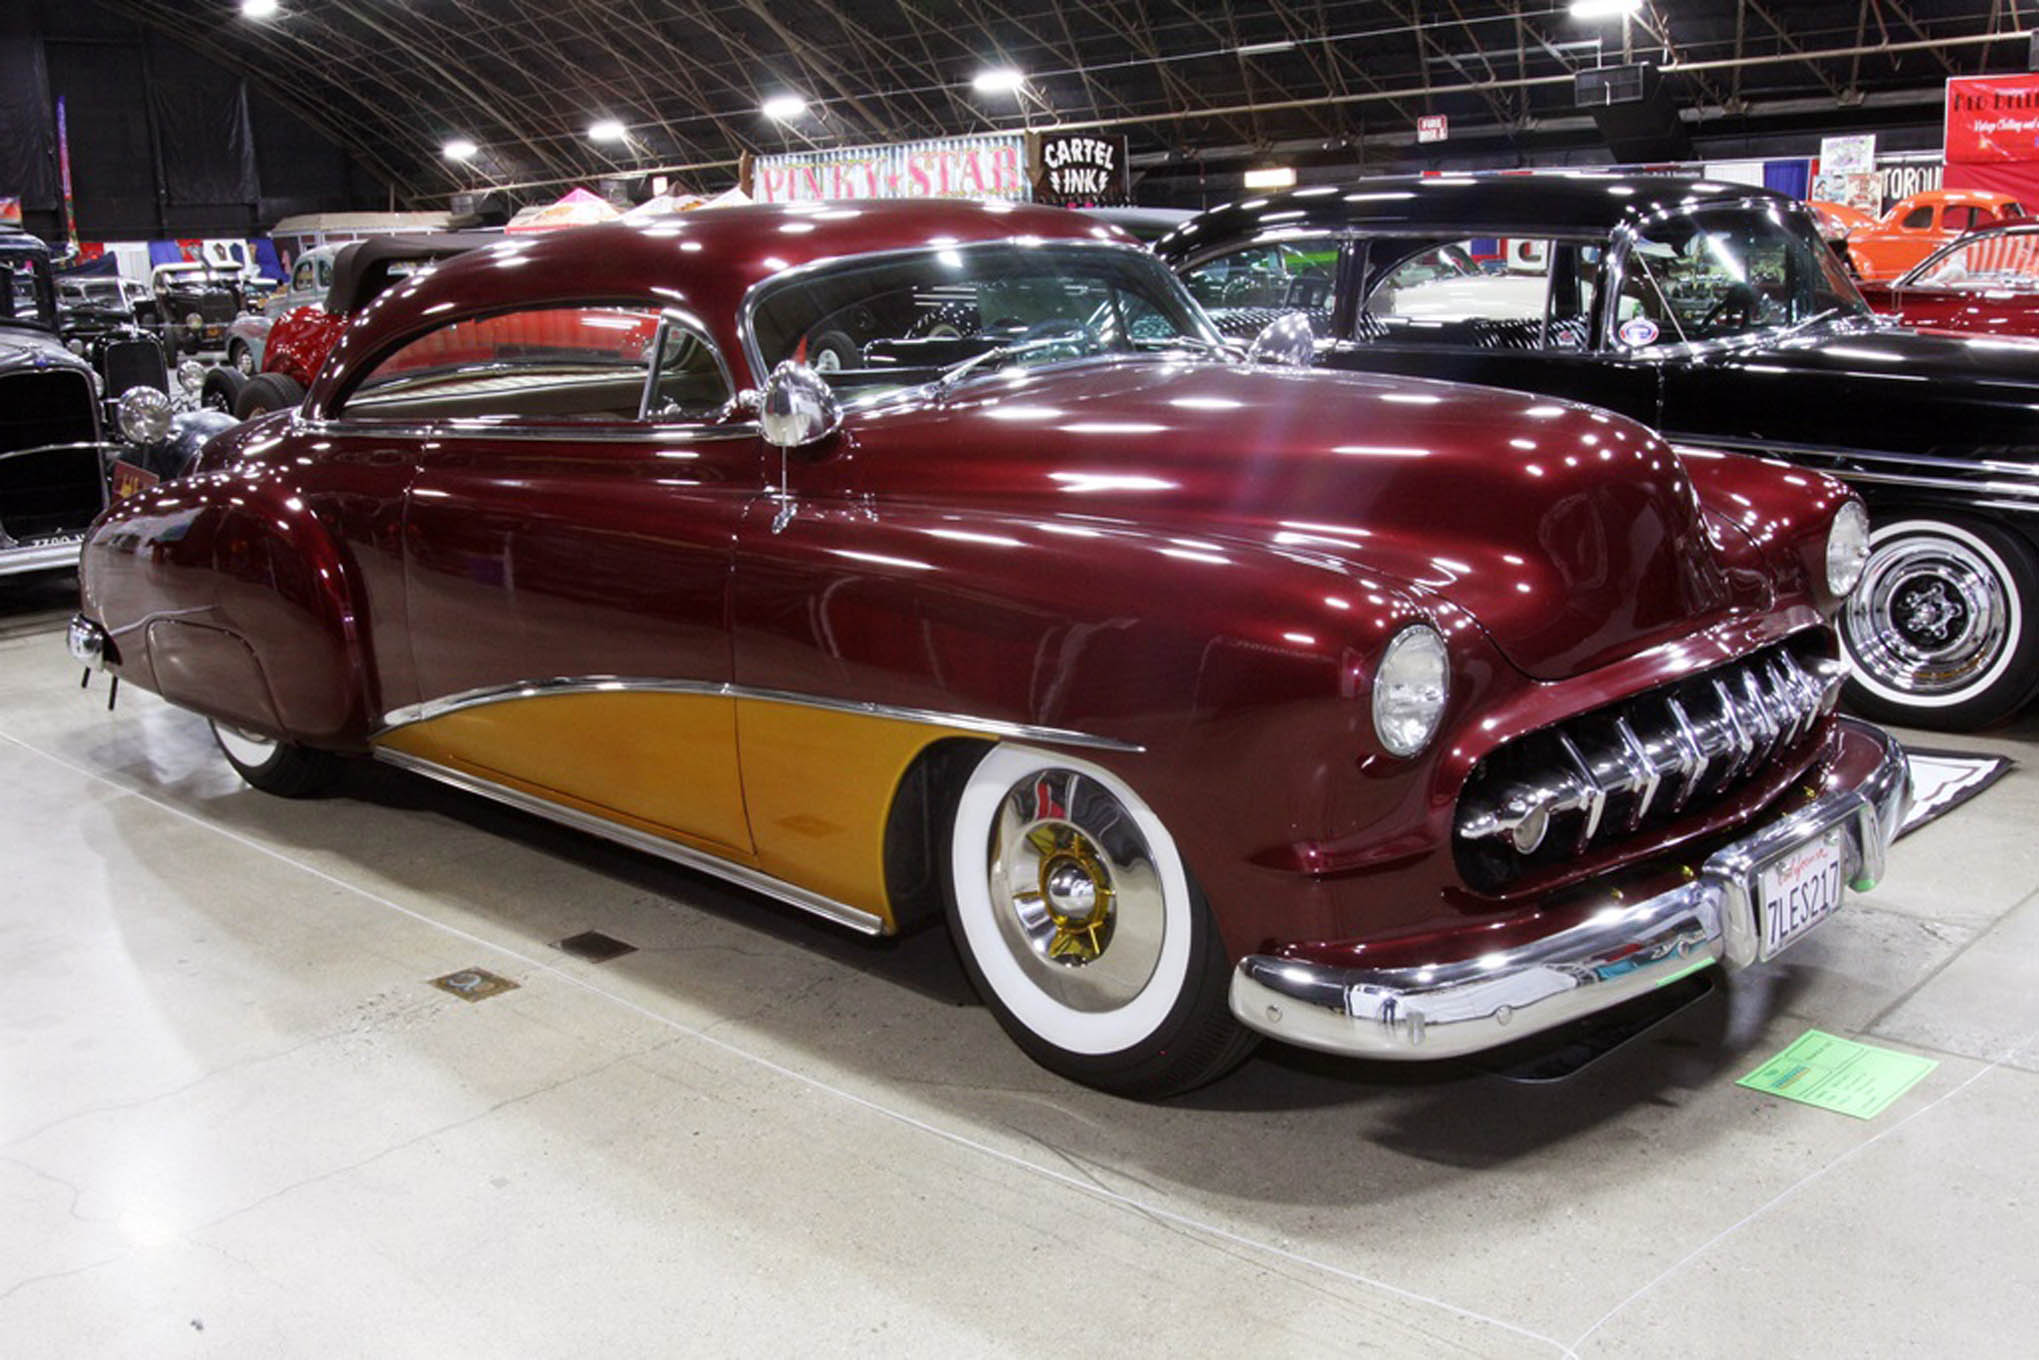 The Jack Peed 1950 Chevy is another fantastic historical custom. Peed bought the car when it was new. Sonny Daout made many of the original mods, including the top chop and conversion to a hardtop. It now wears two-tone maroon and gold paint, and is owned by Gary and Mary Minor of San Leandro.